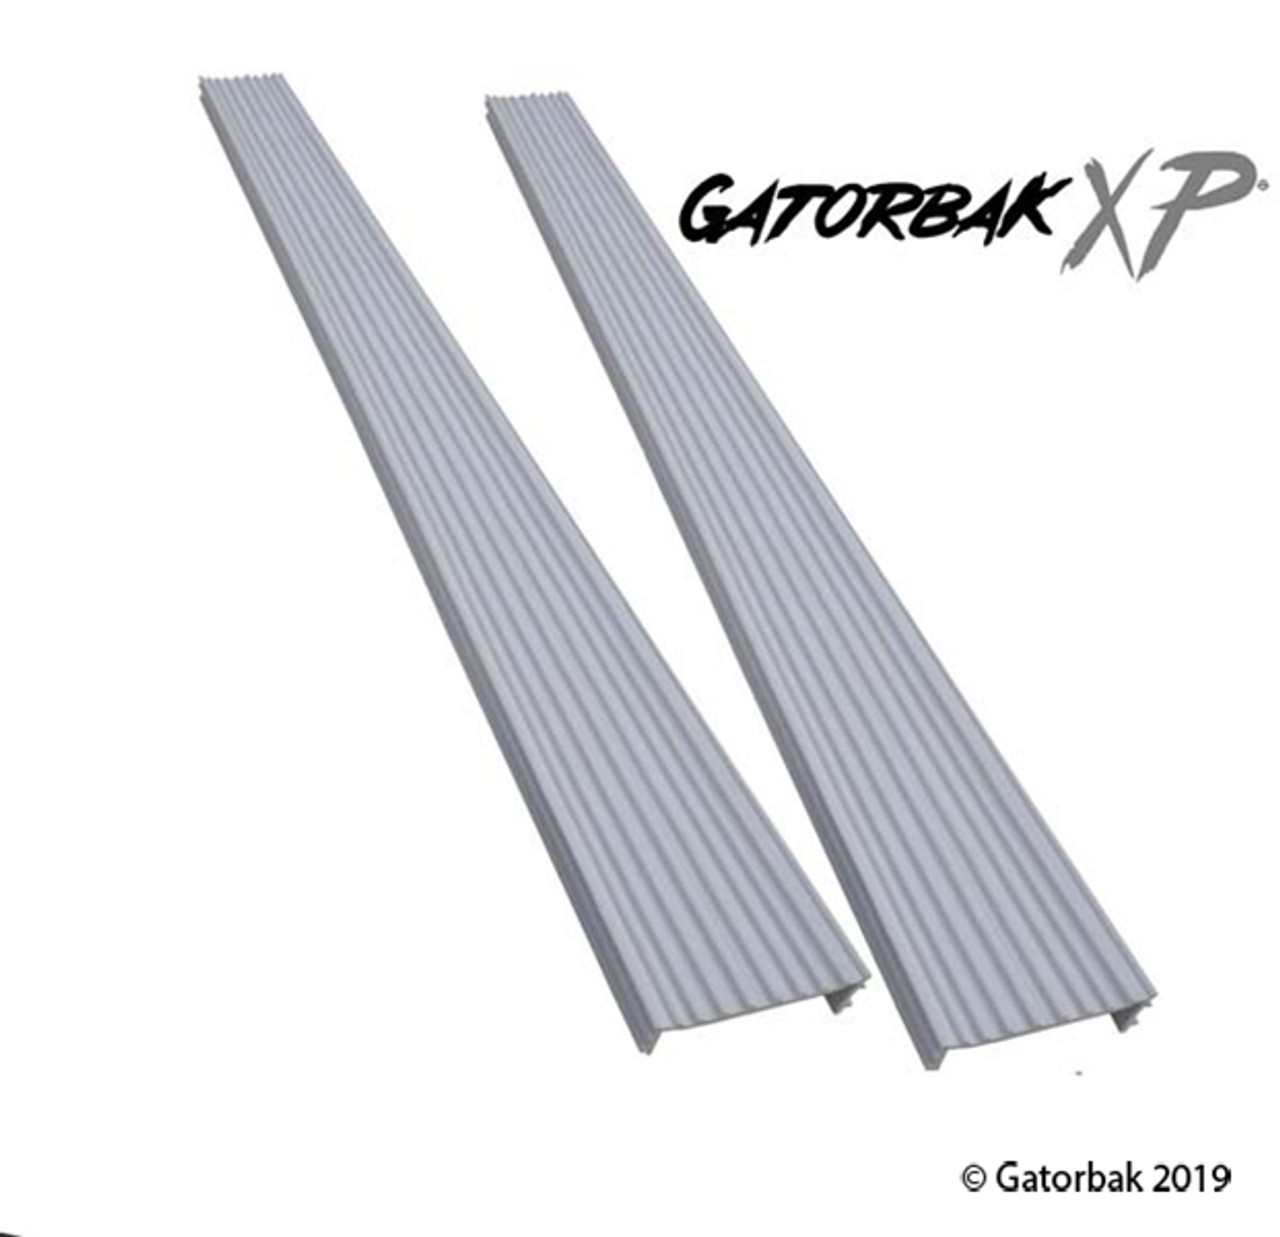 Regular 2x6 Flat GB550XP Kits